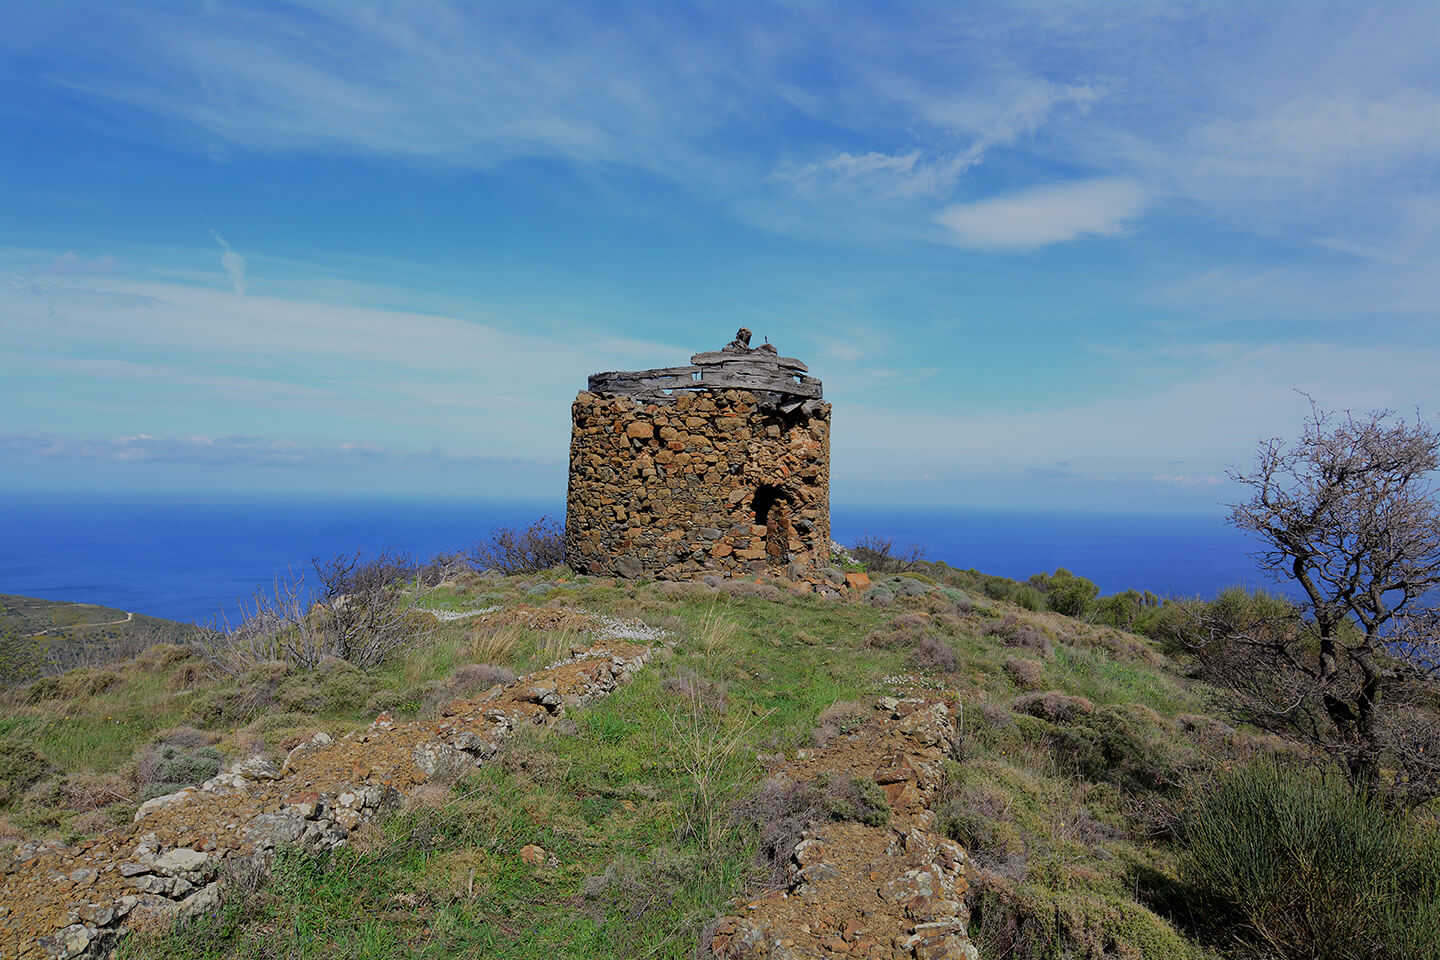 Watchtower in Kourounia Chios